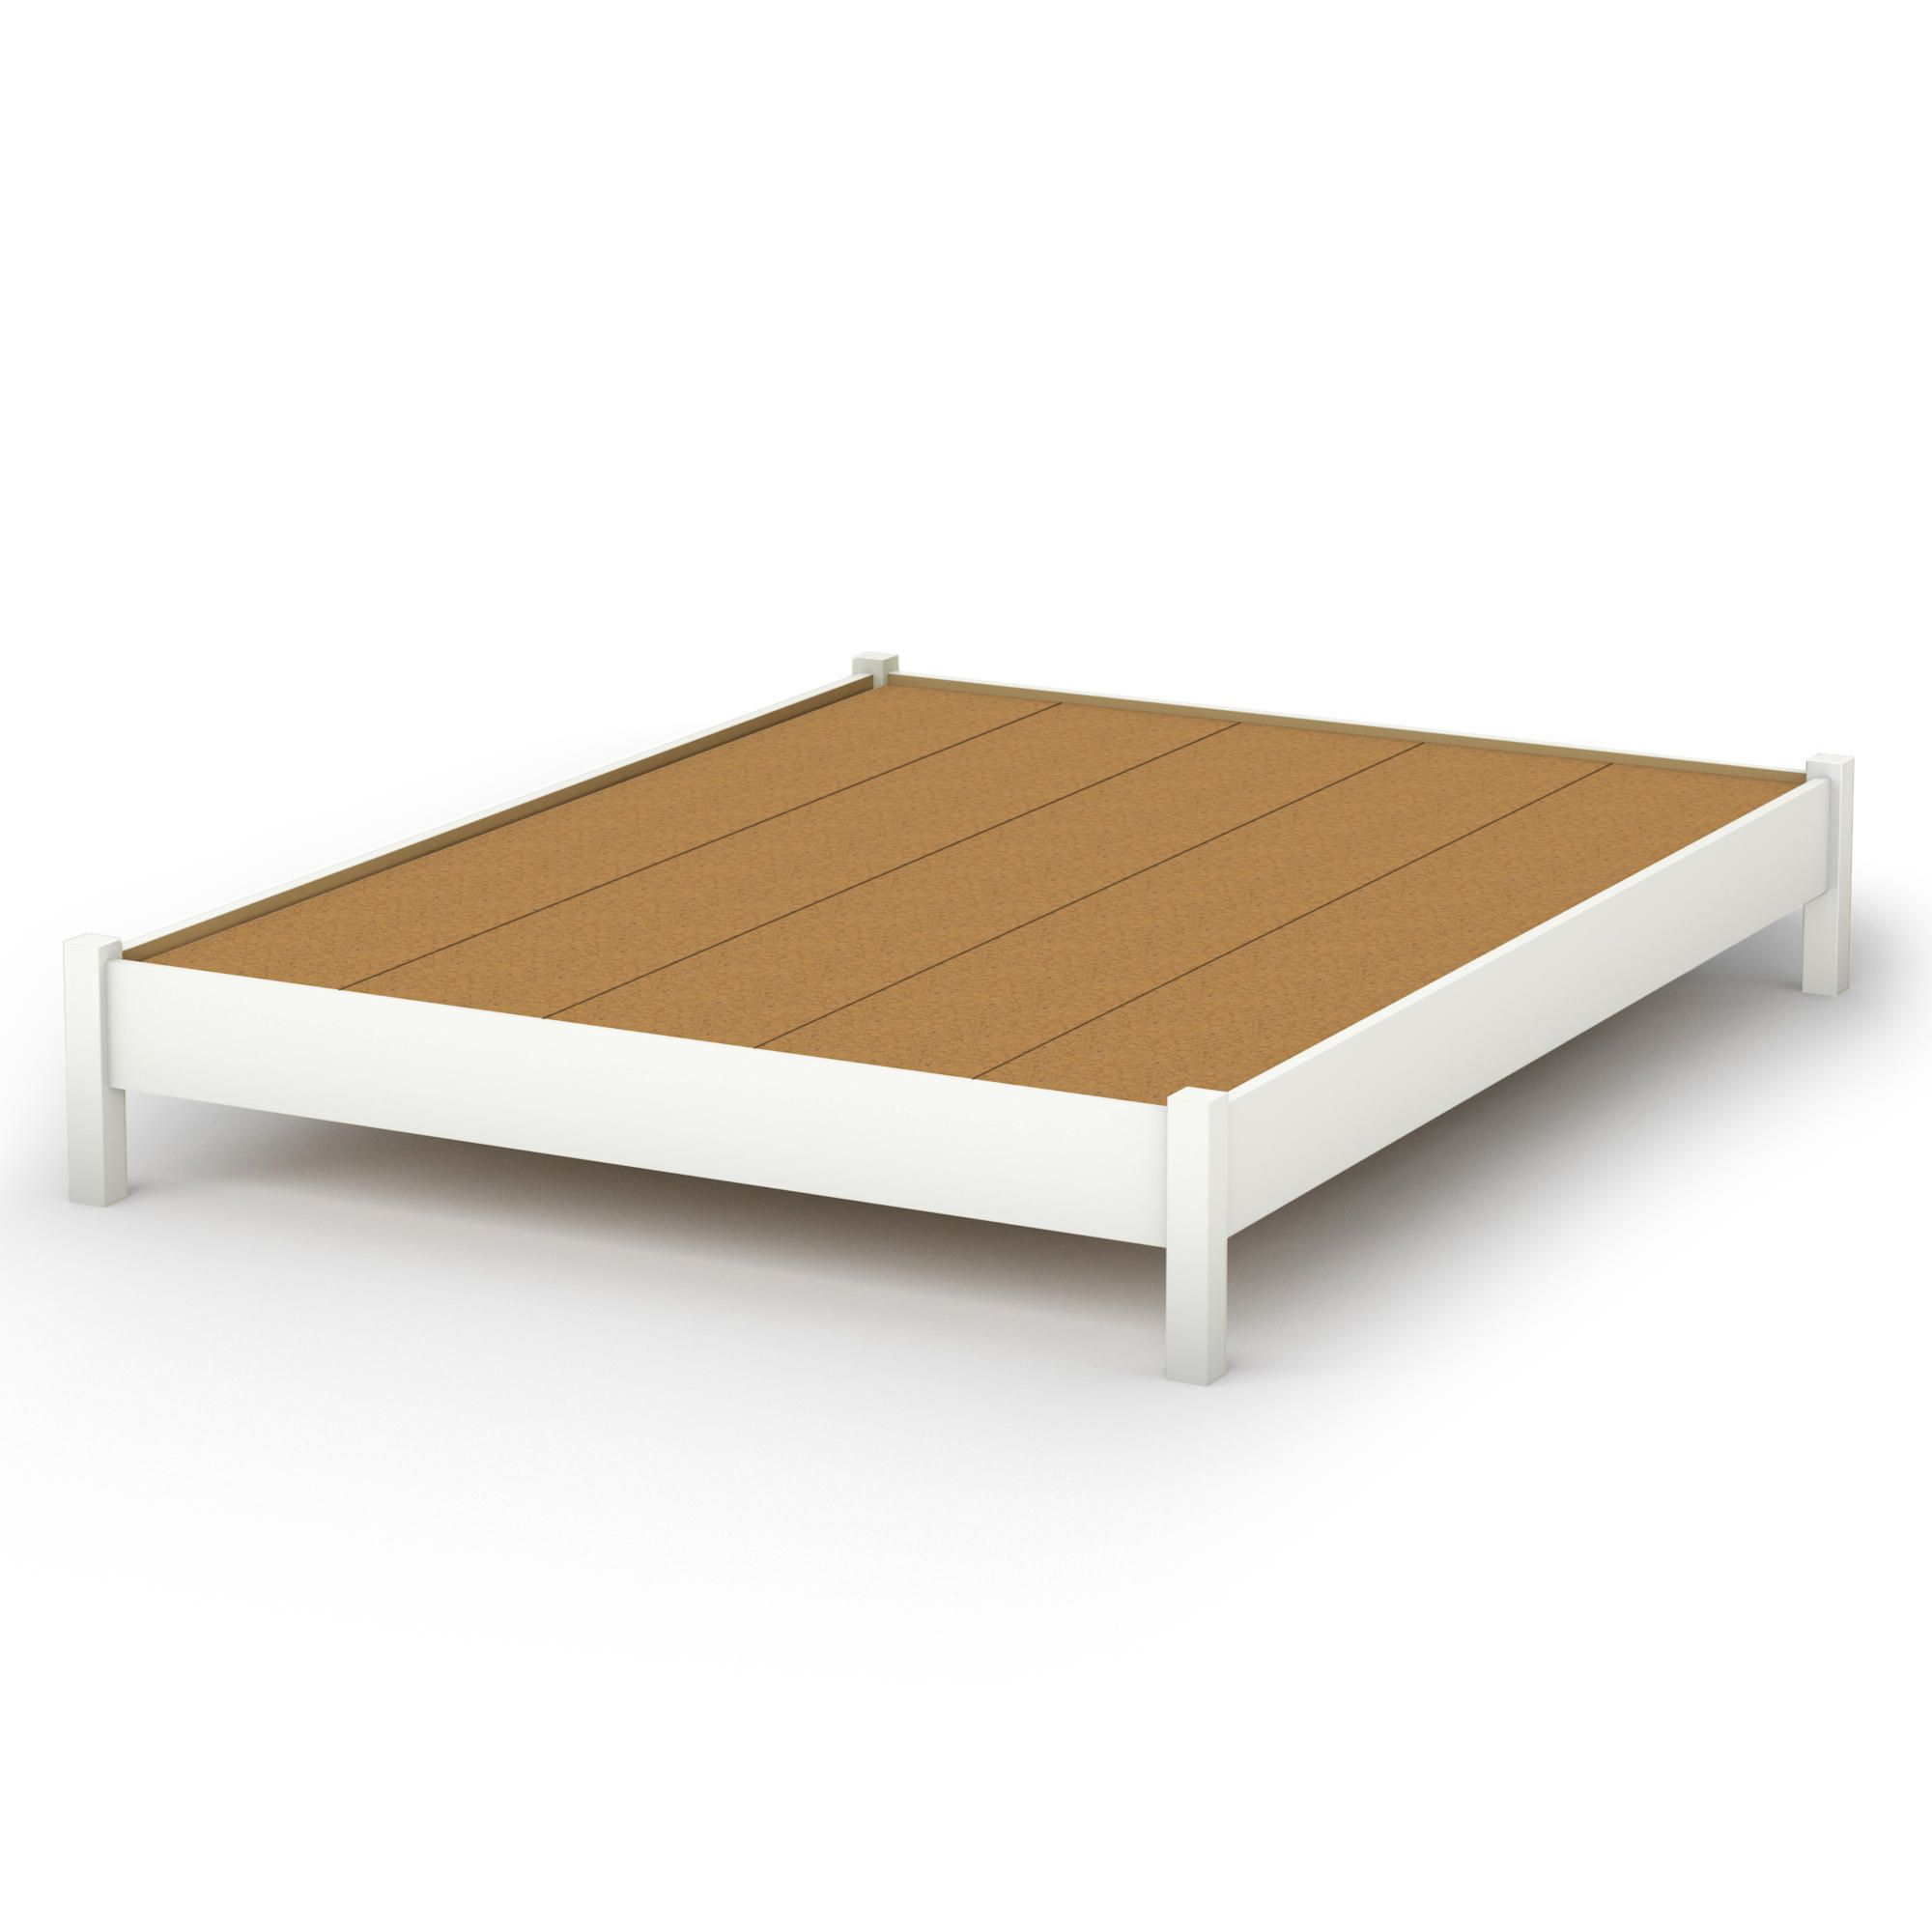 white by walnut bedroom cheap twin measurements xl with full bed single for kids dimensions mattress frame magnificent trundle size california queen king side beds adults